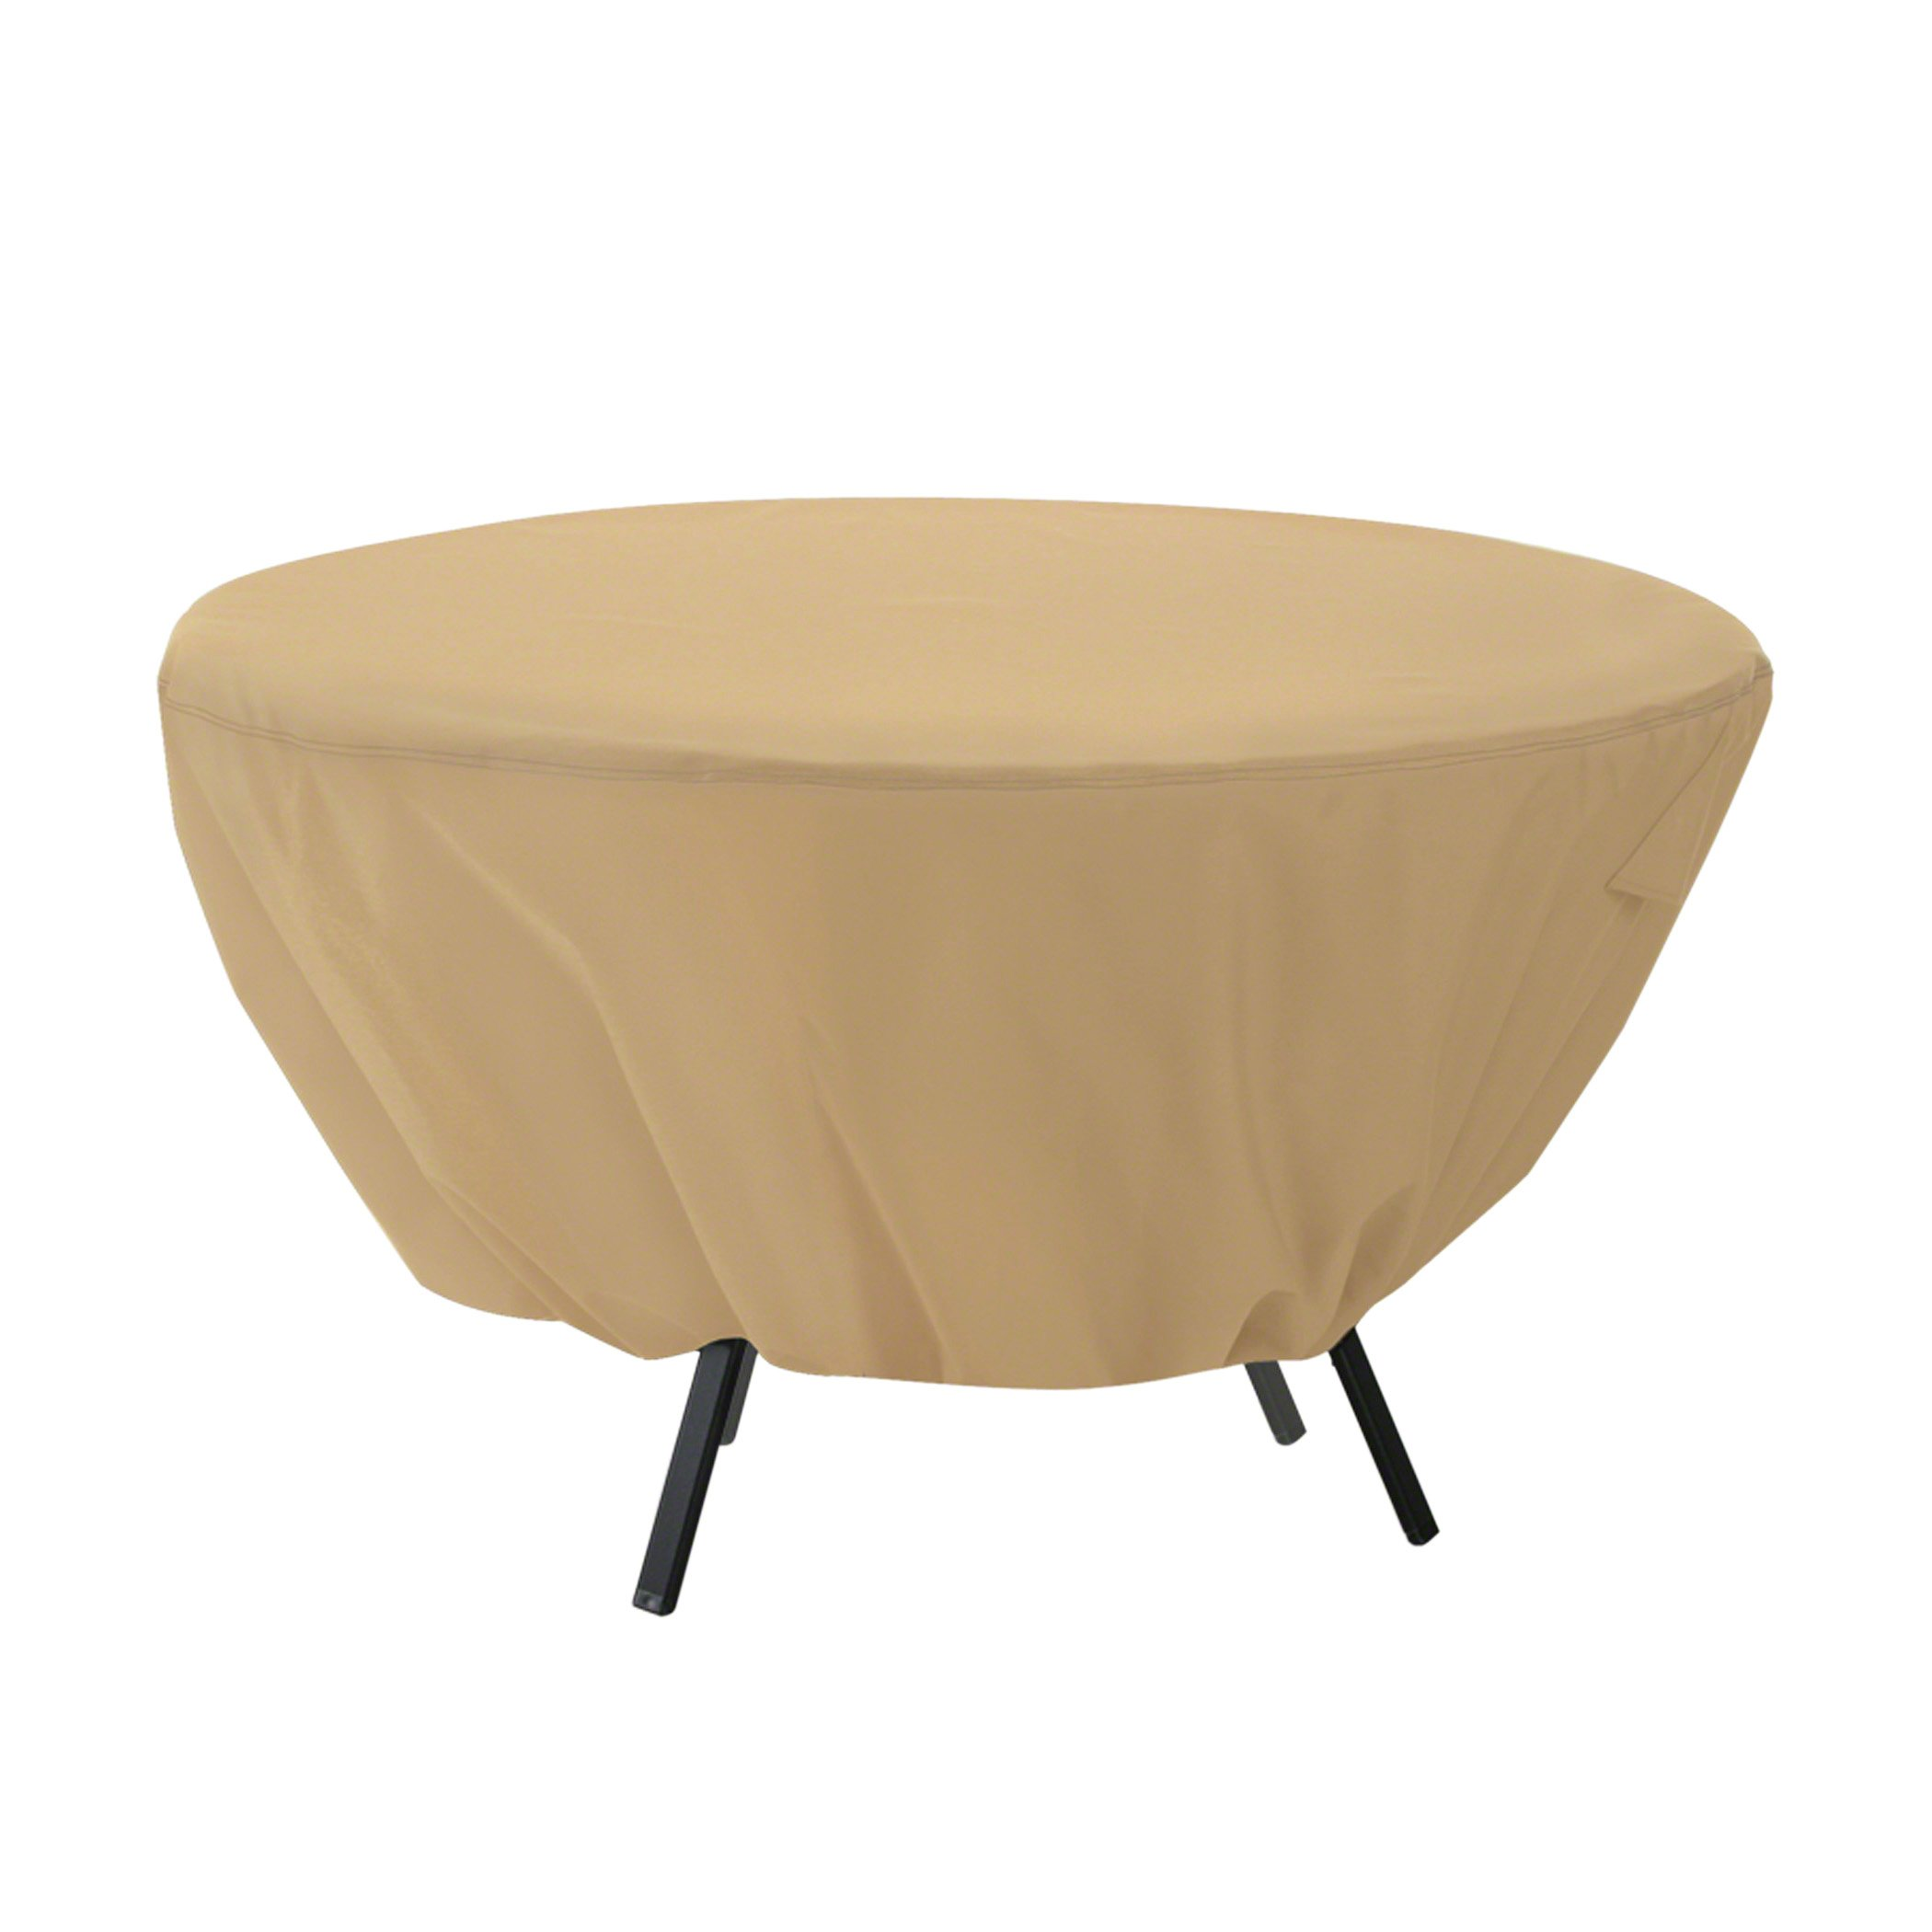 Classic Accessories Terrazzo Round Patio Table Cover - All Weather Protection Outdoor Furniture Cover (58202-EC) by Classic Accessories